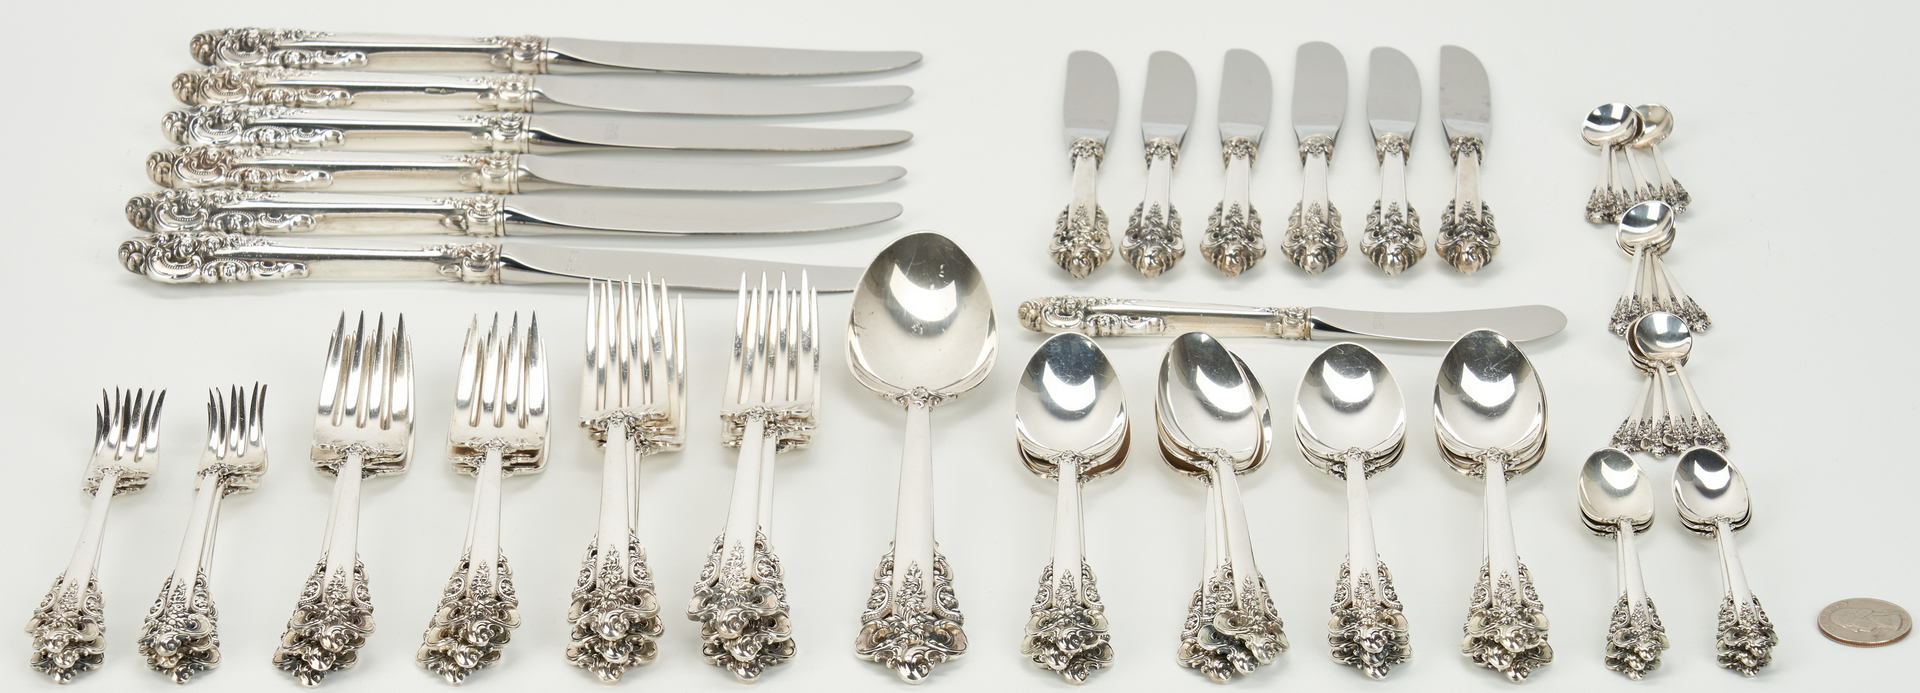 Lot 750: Wallace Grand Baroque Sterling Flatware, 62 Pcs.